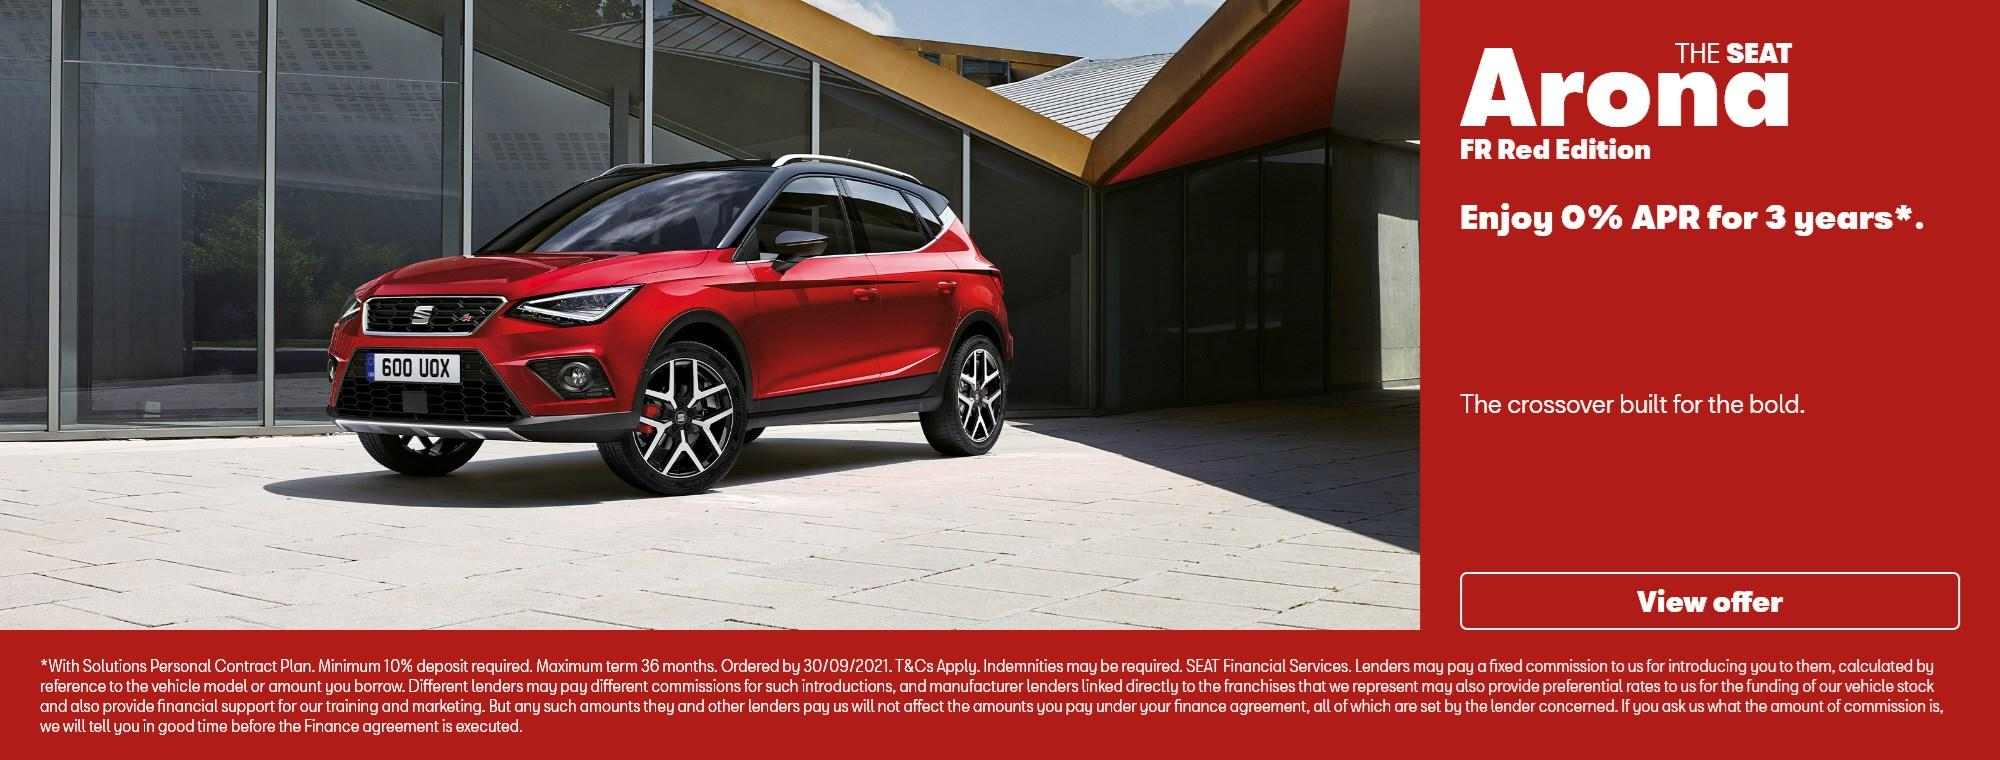 SEAT Arona FR Red Edition with offer